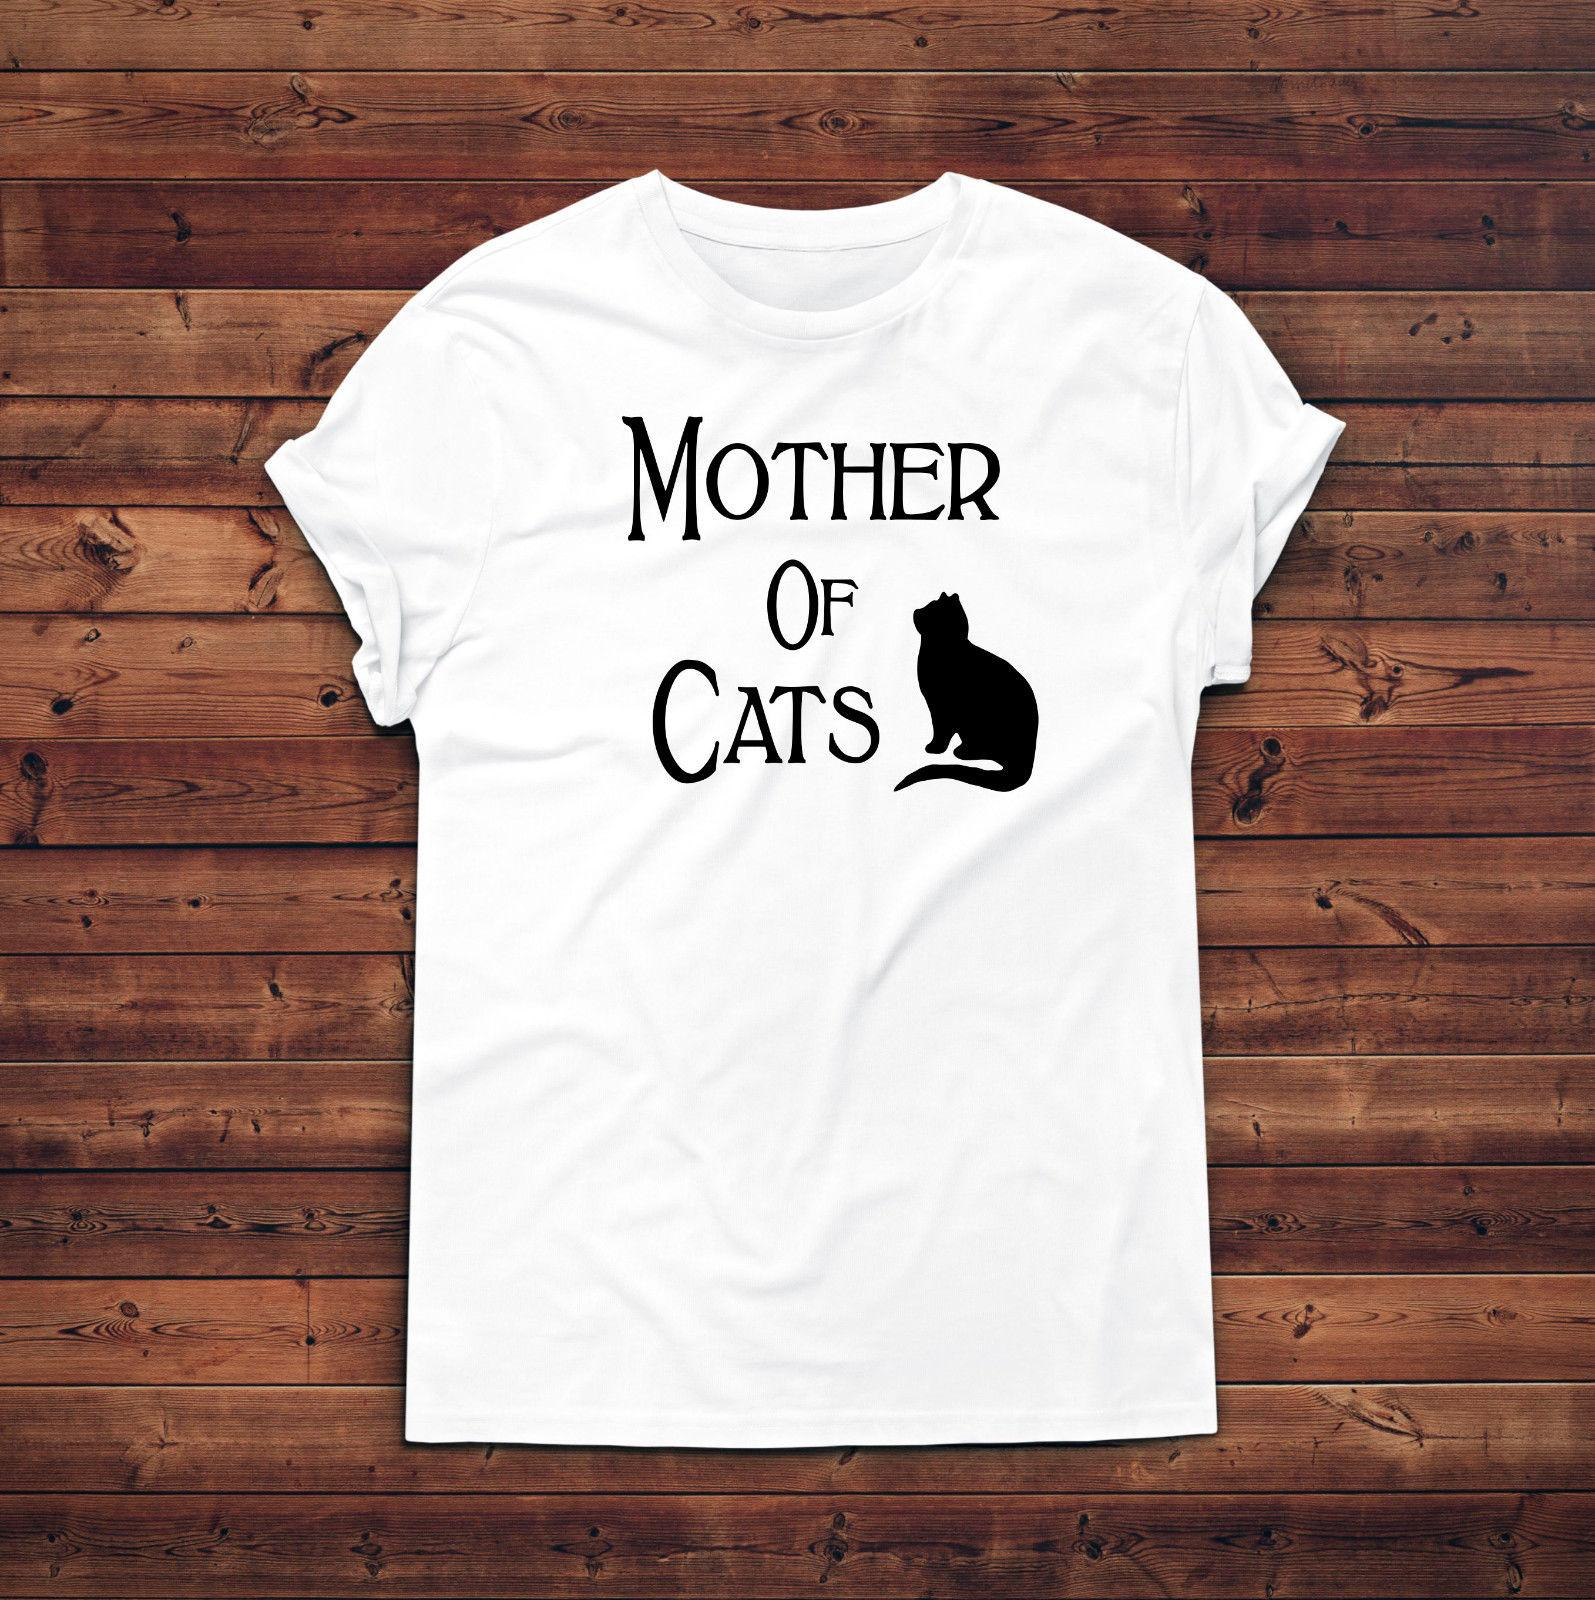 6232375cab8 Mother Of Cats T Shirt